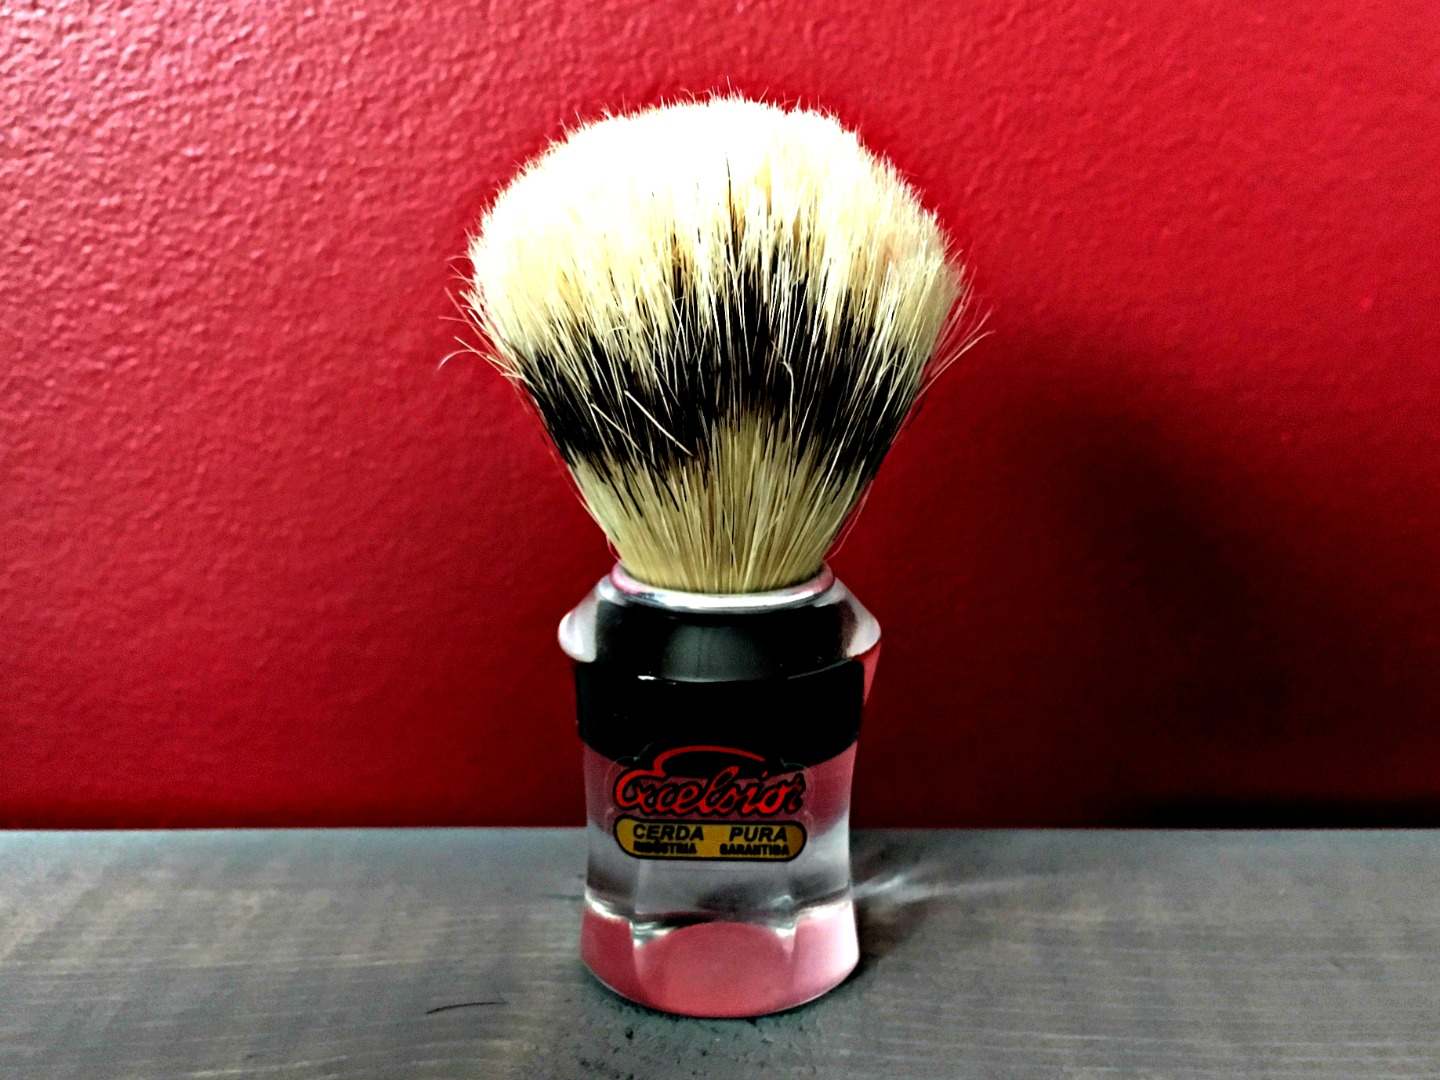 Semogue 620 Boar Shaving Brush Review